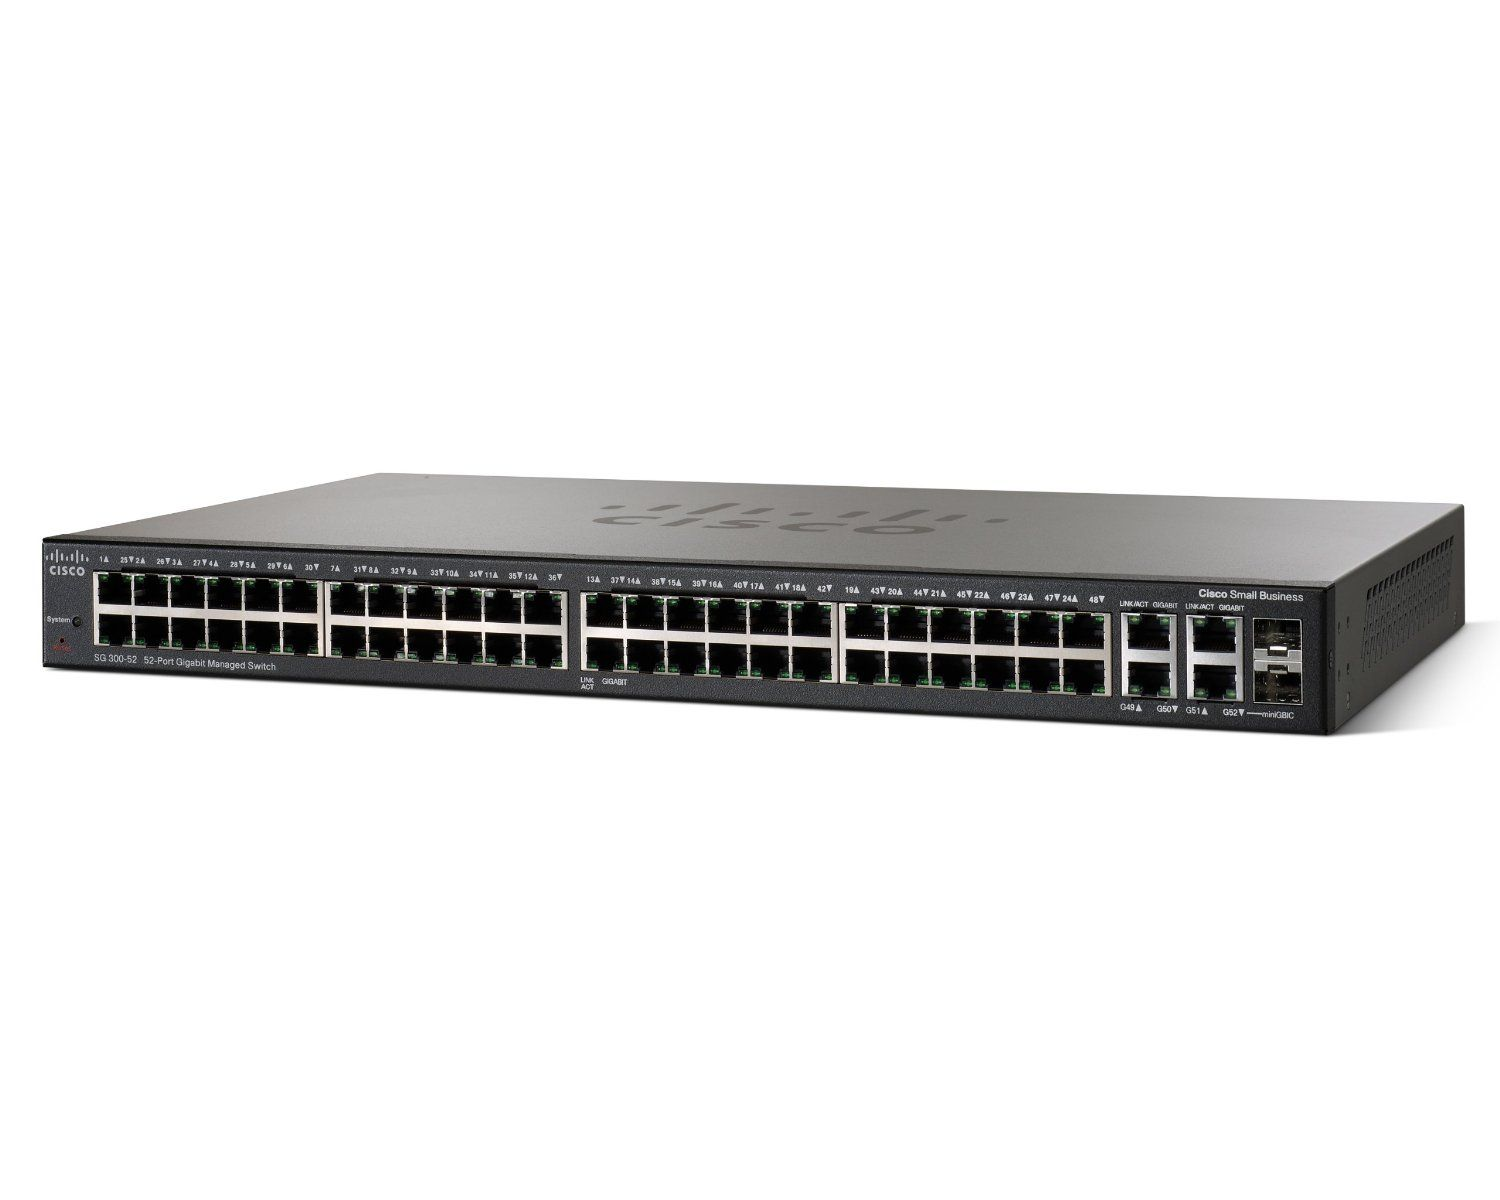 SRW2048-K9-NA Cisco SG 300-50 50-port Gigabit Managed Switch